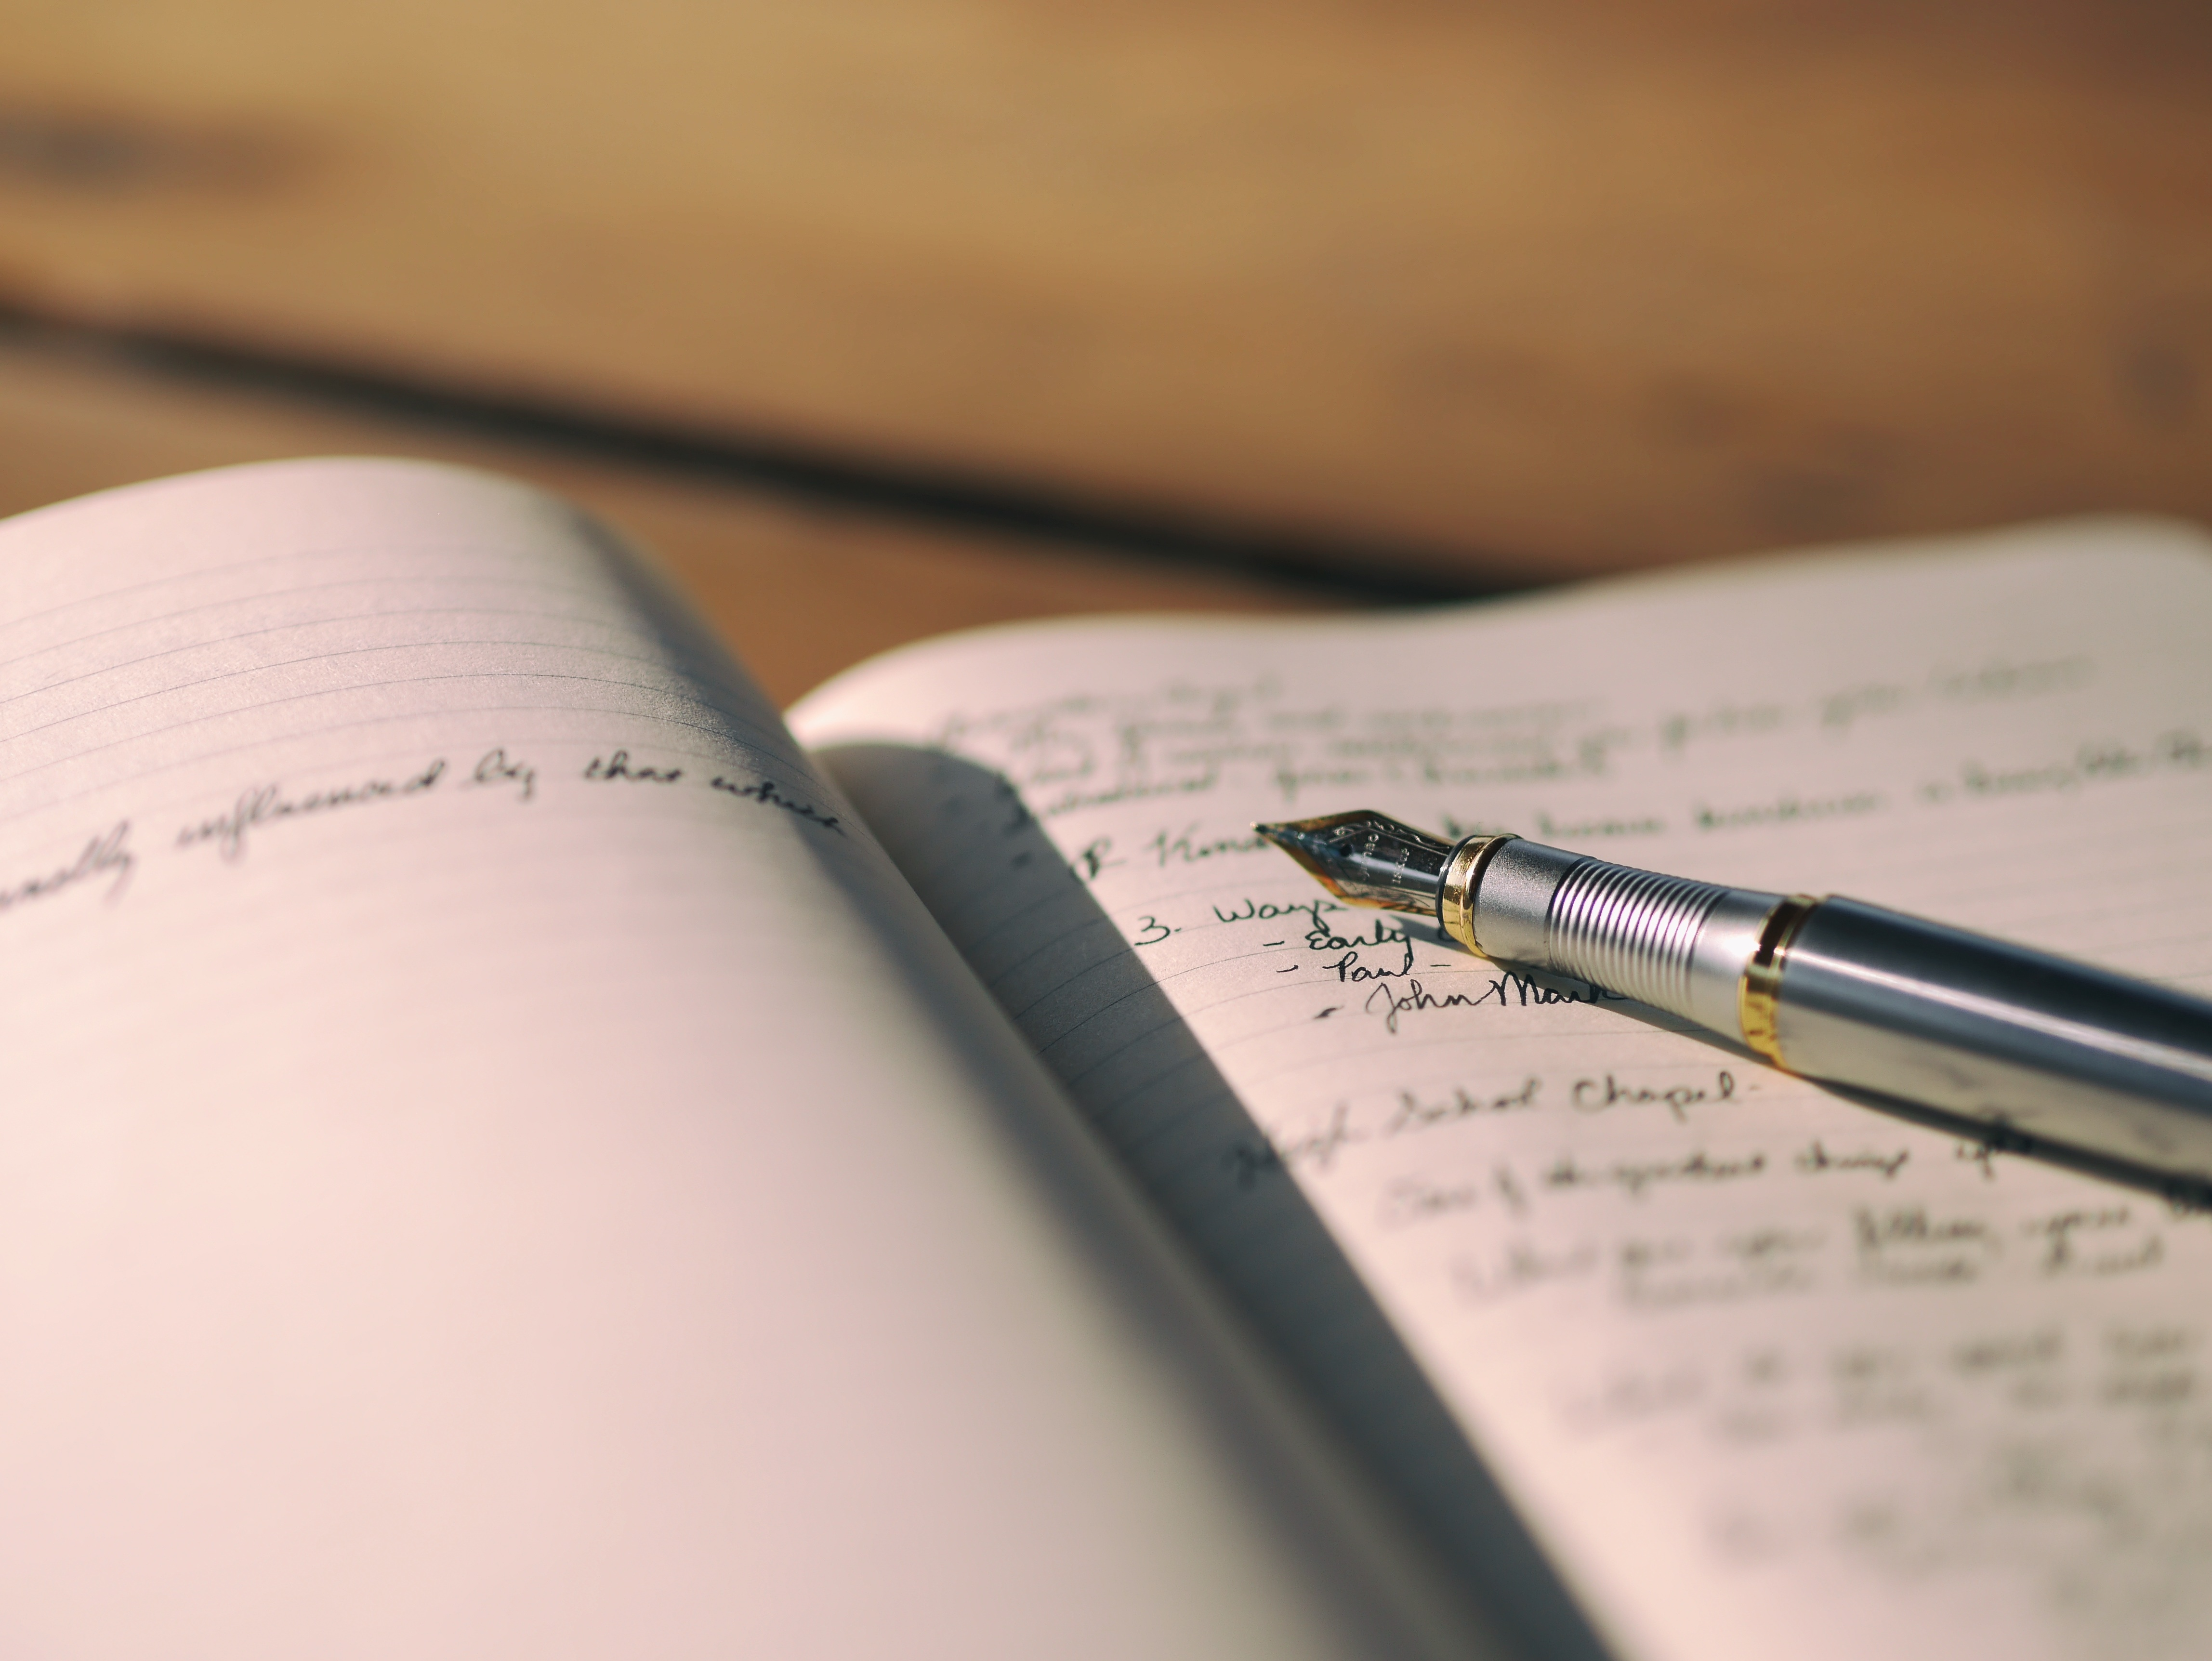 Notebook and Pen image - Free stock photo - Public Domain photo ...